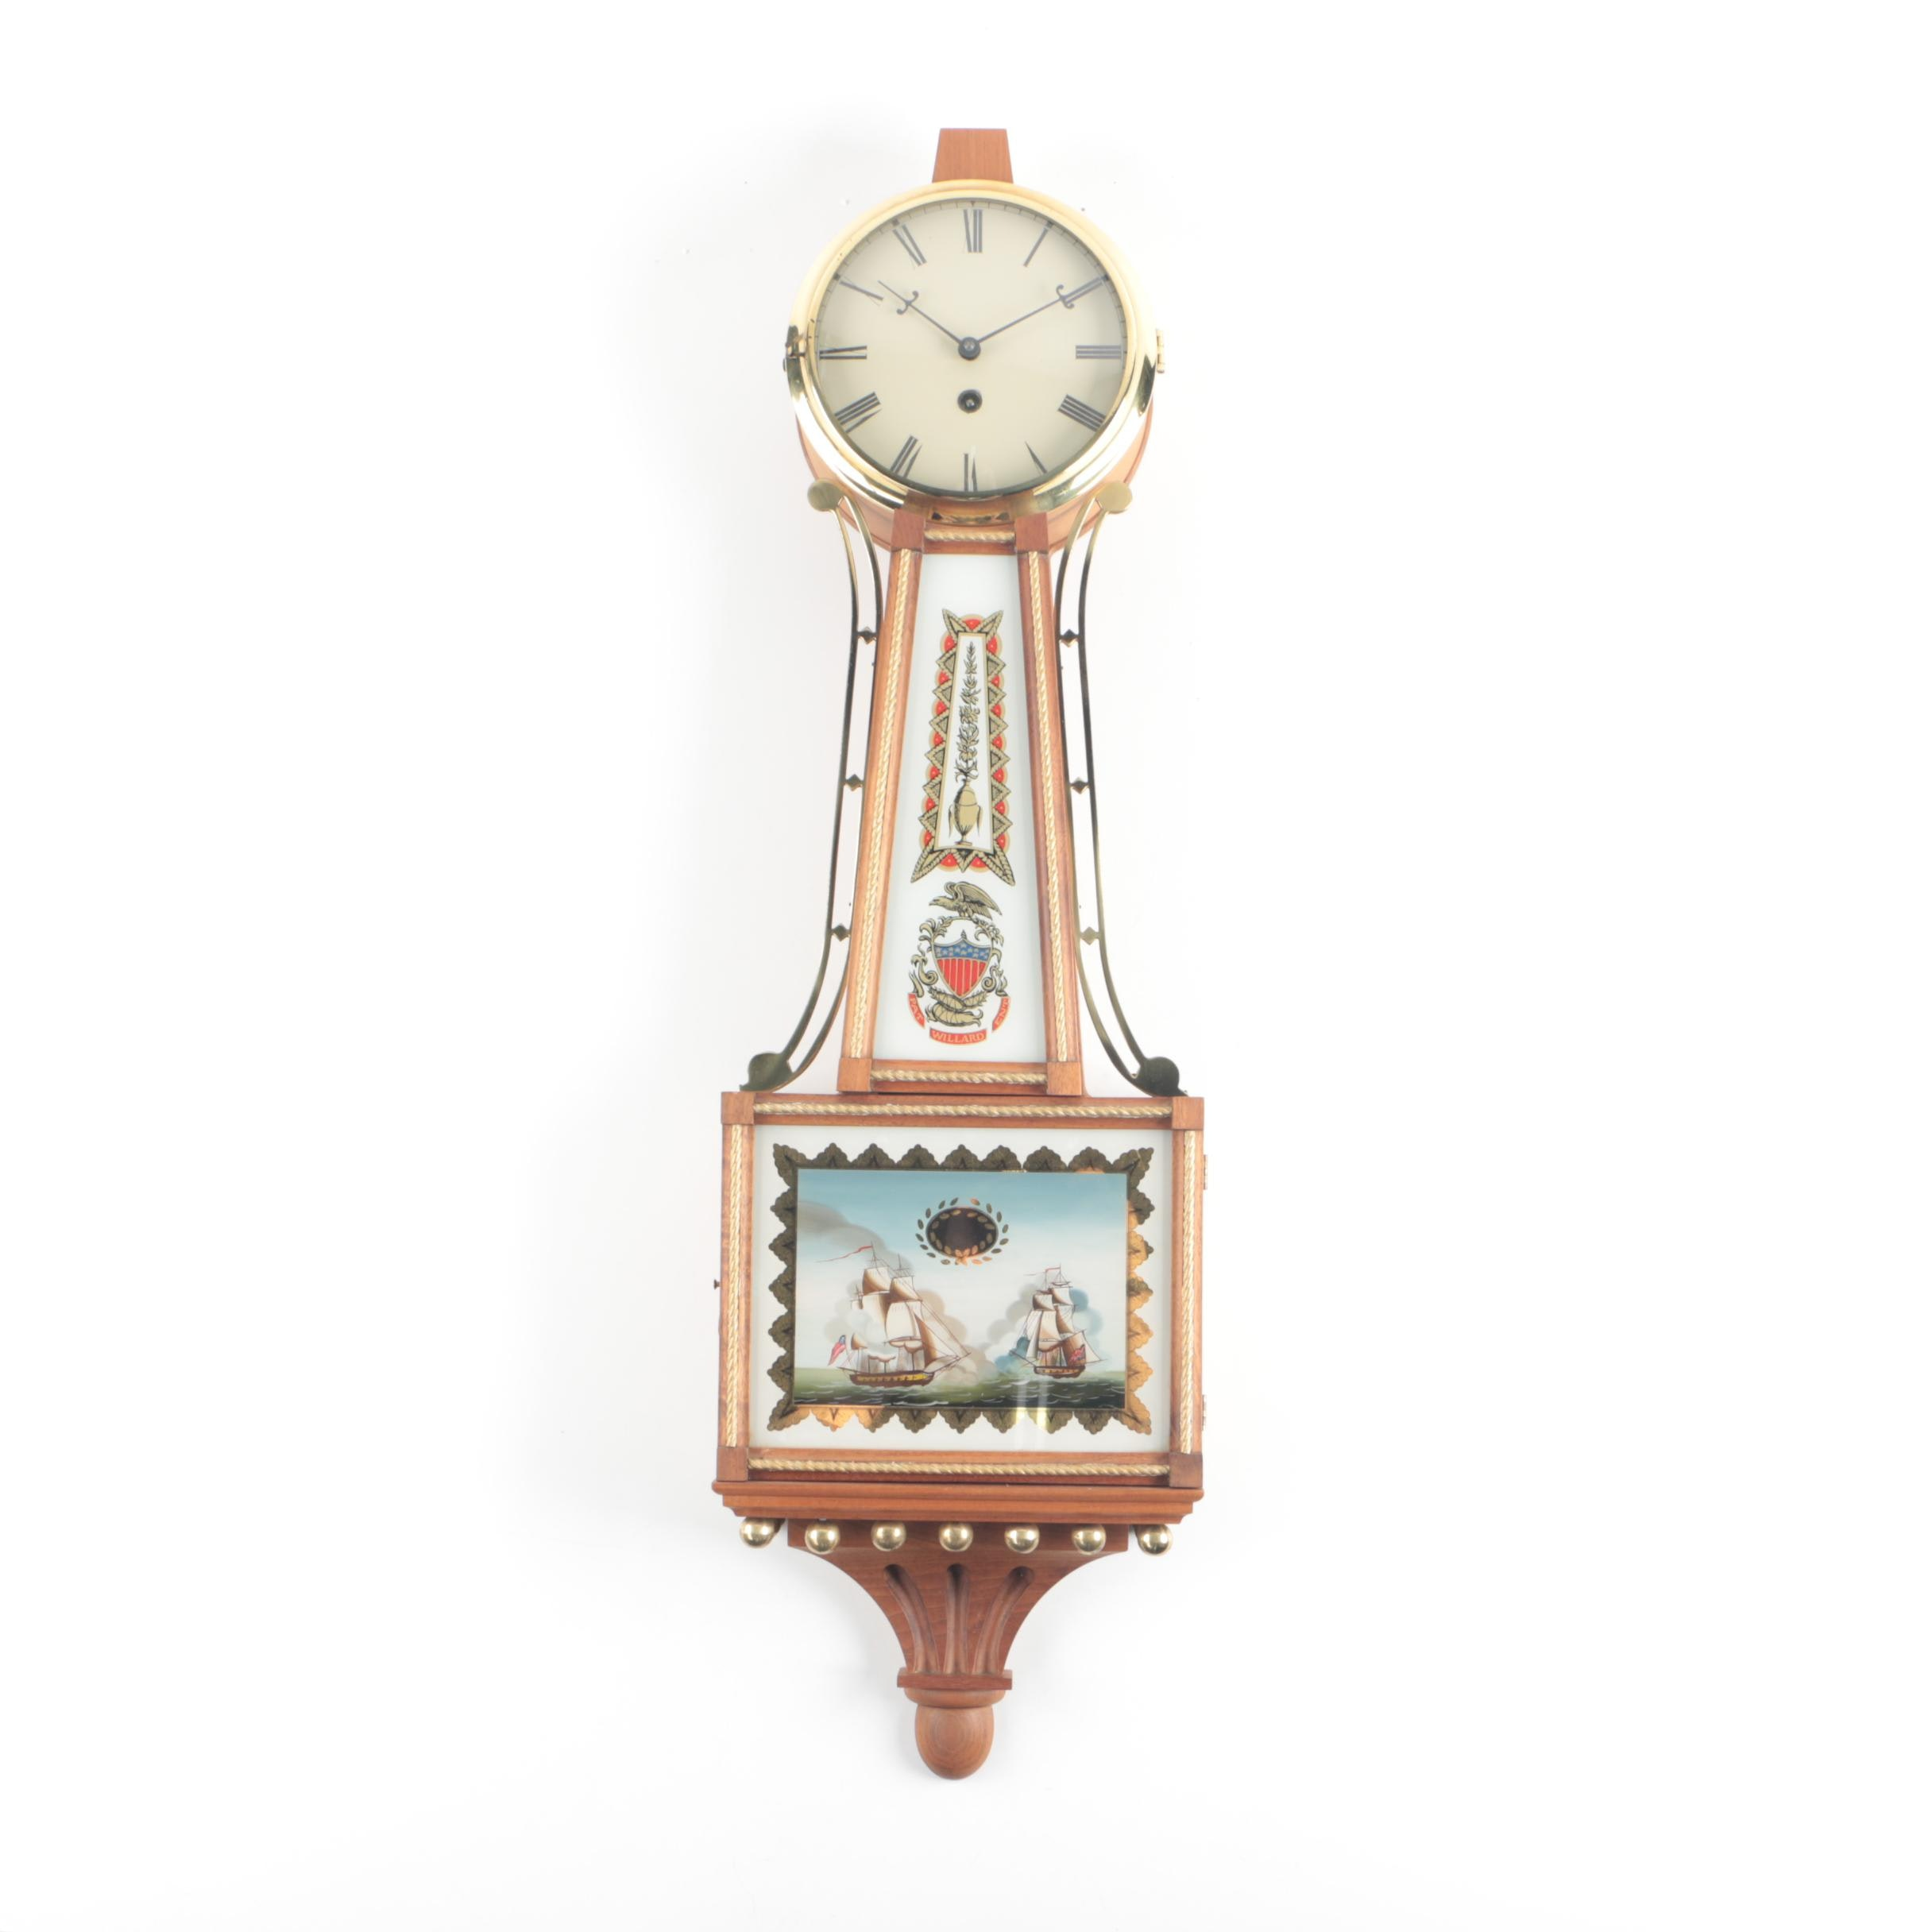 Reproduction Willard Patent Banjo Wall Clock with Reverse Glass Painting